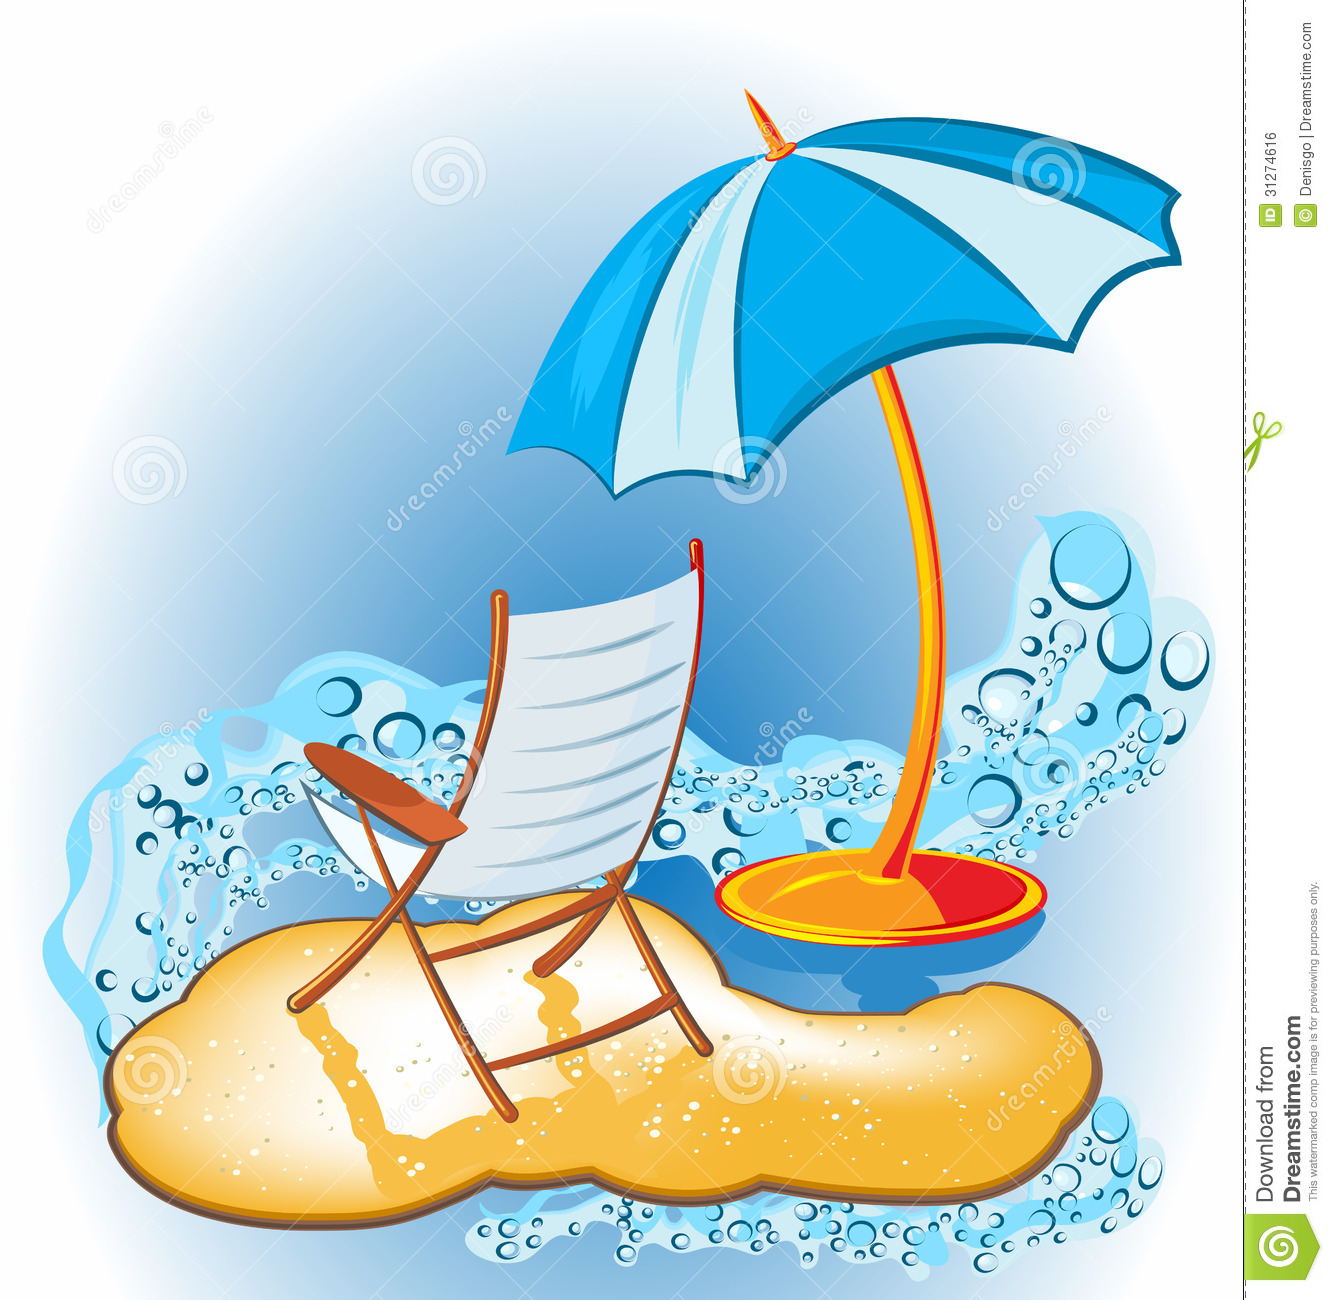 clipart summer holiday images - photo #6